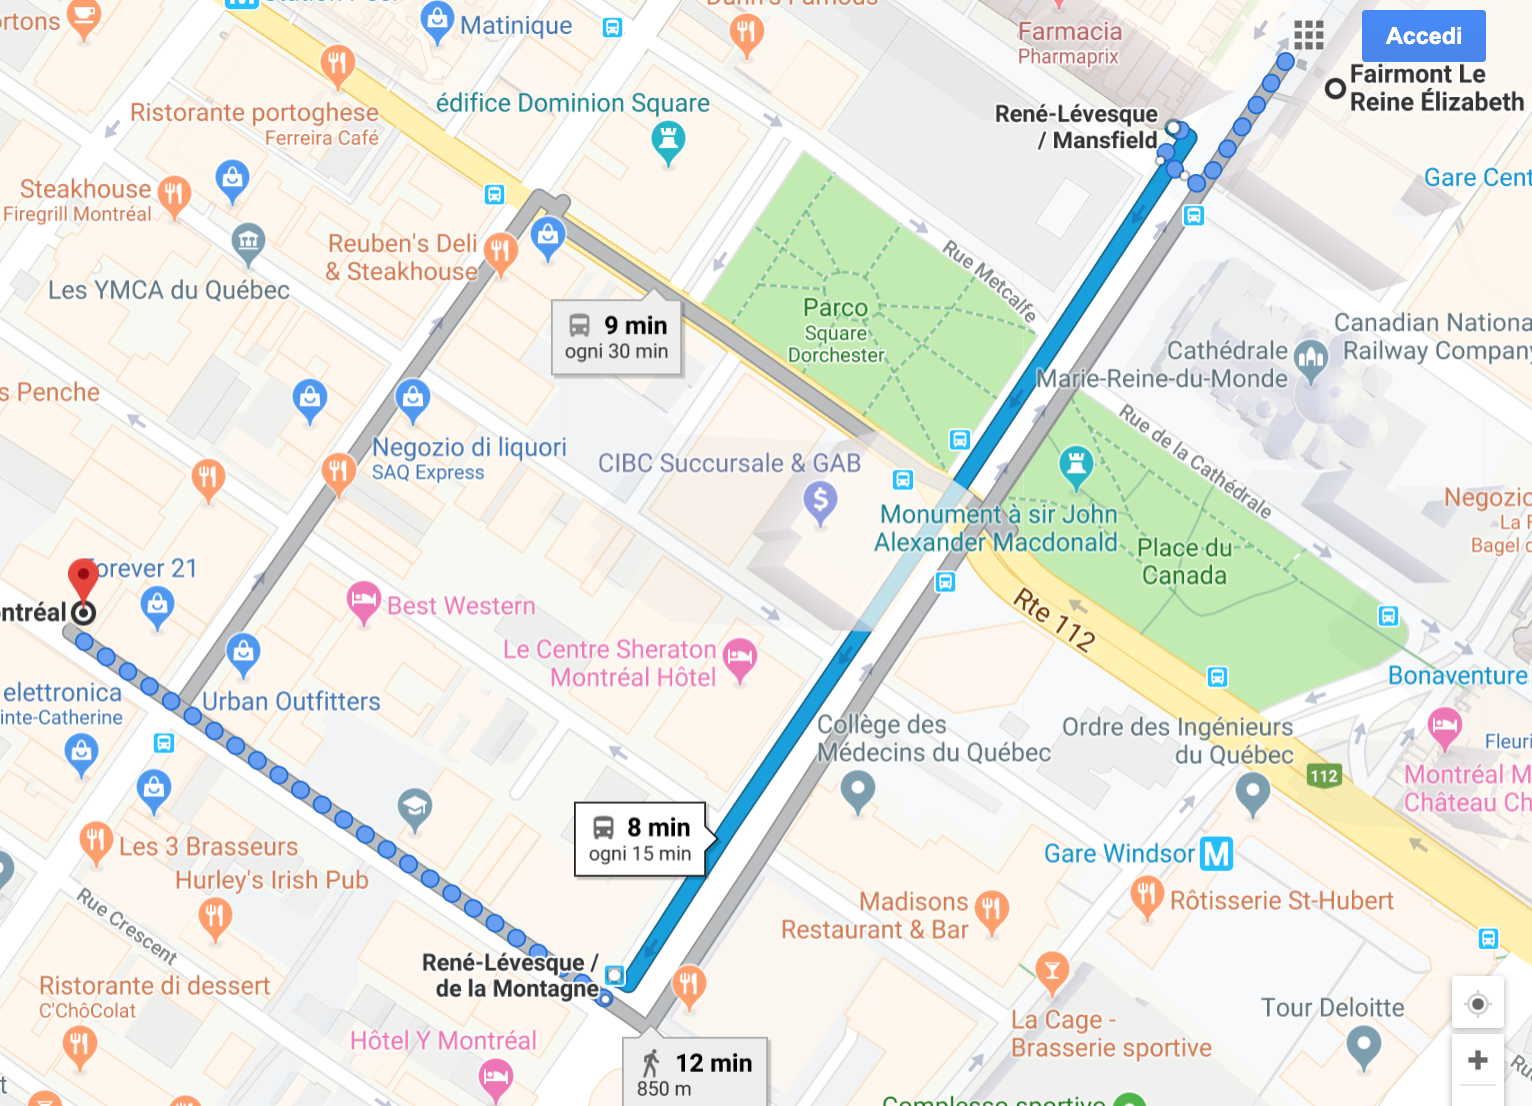 Directions to restaurant